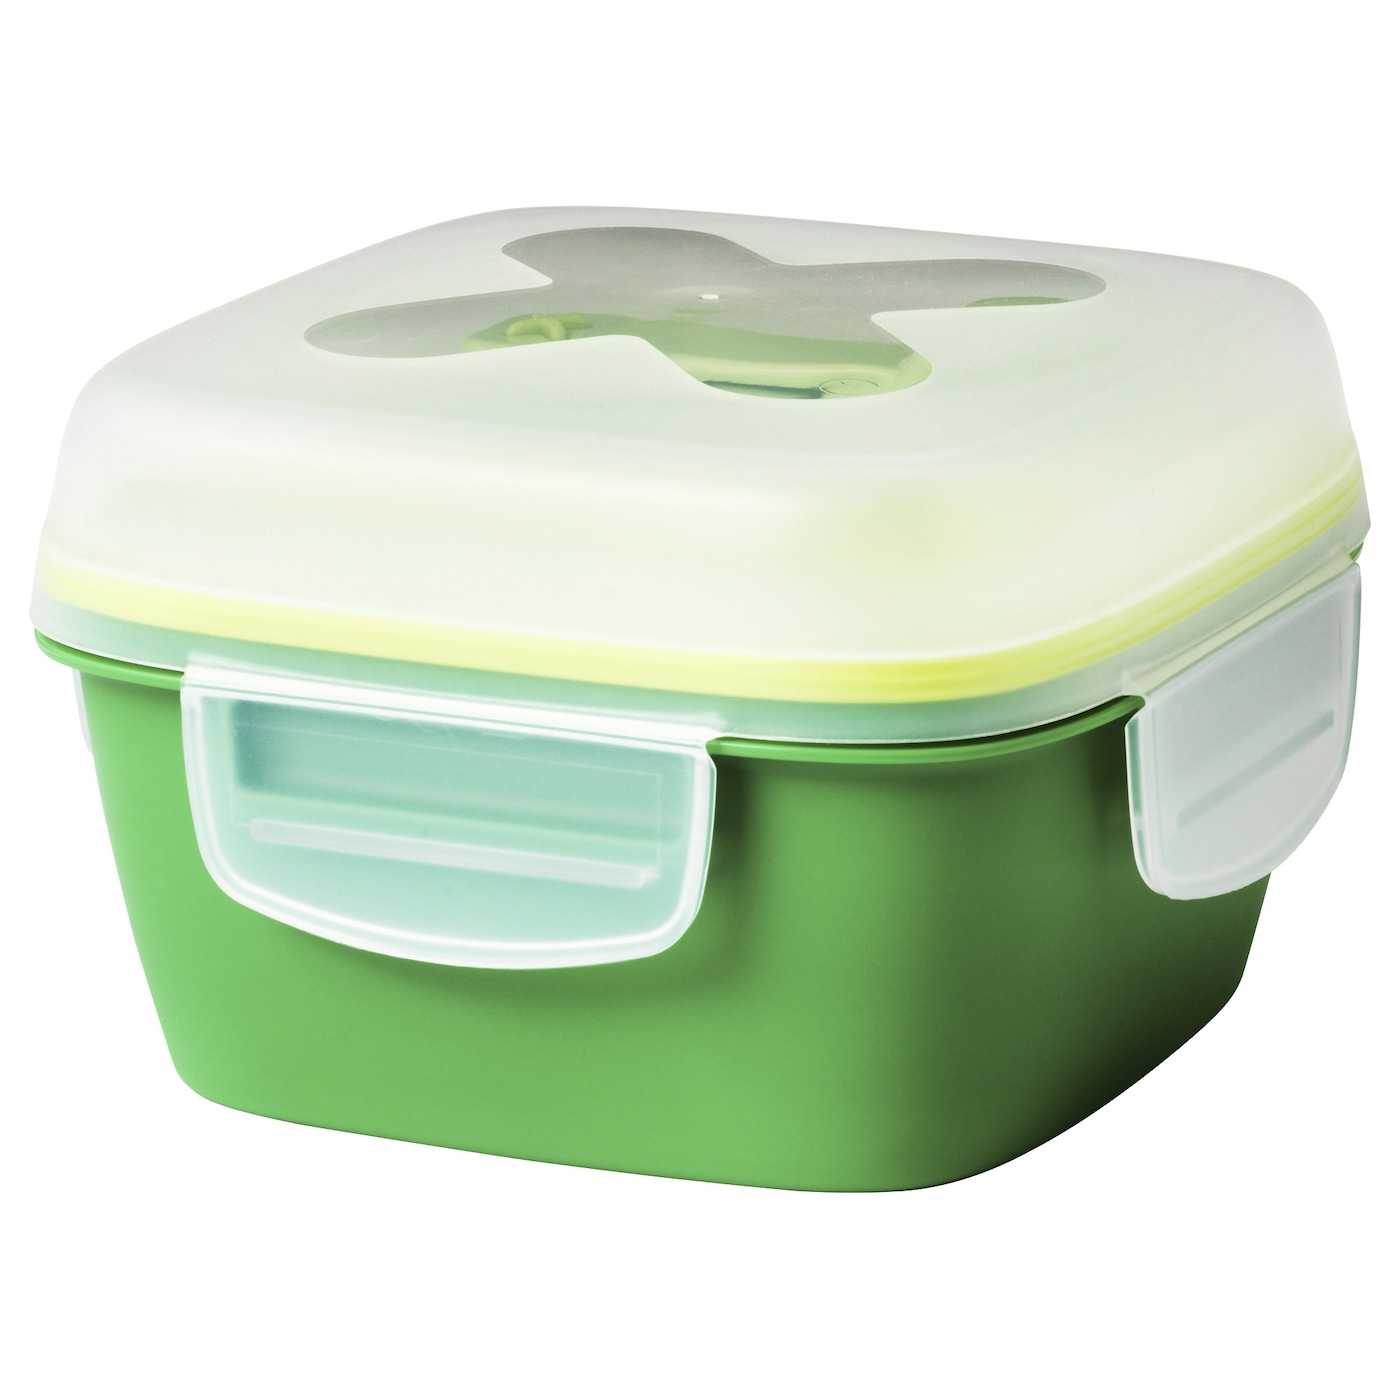 IKEA BLANDNING lunch box for salad